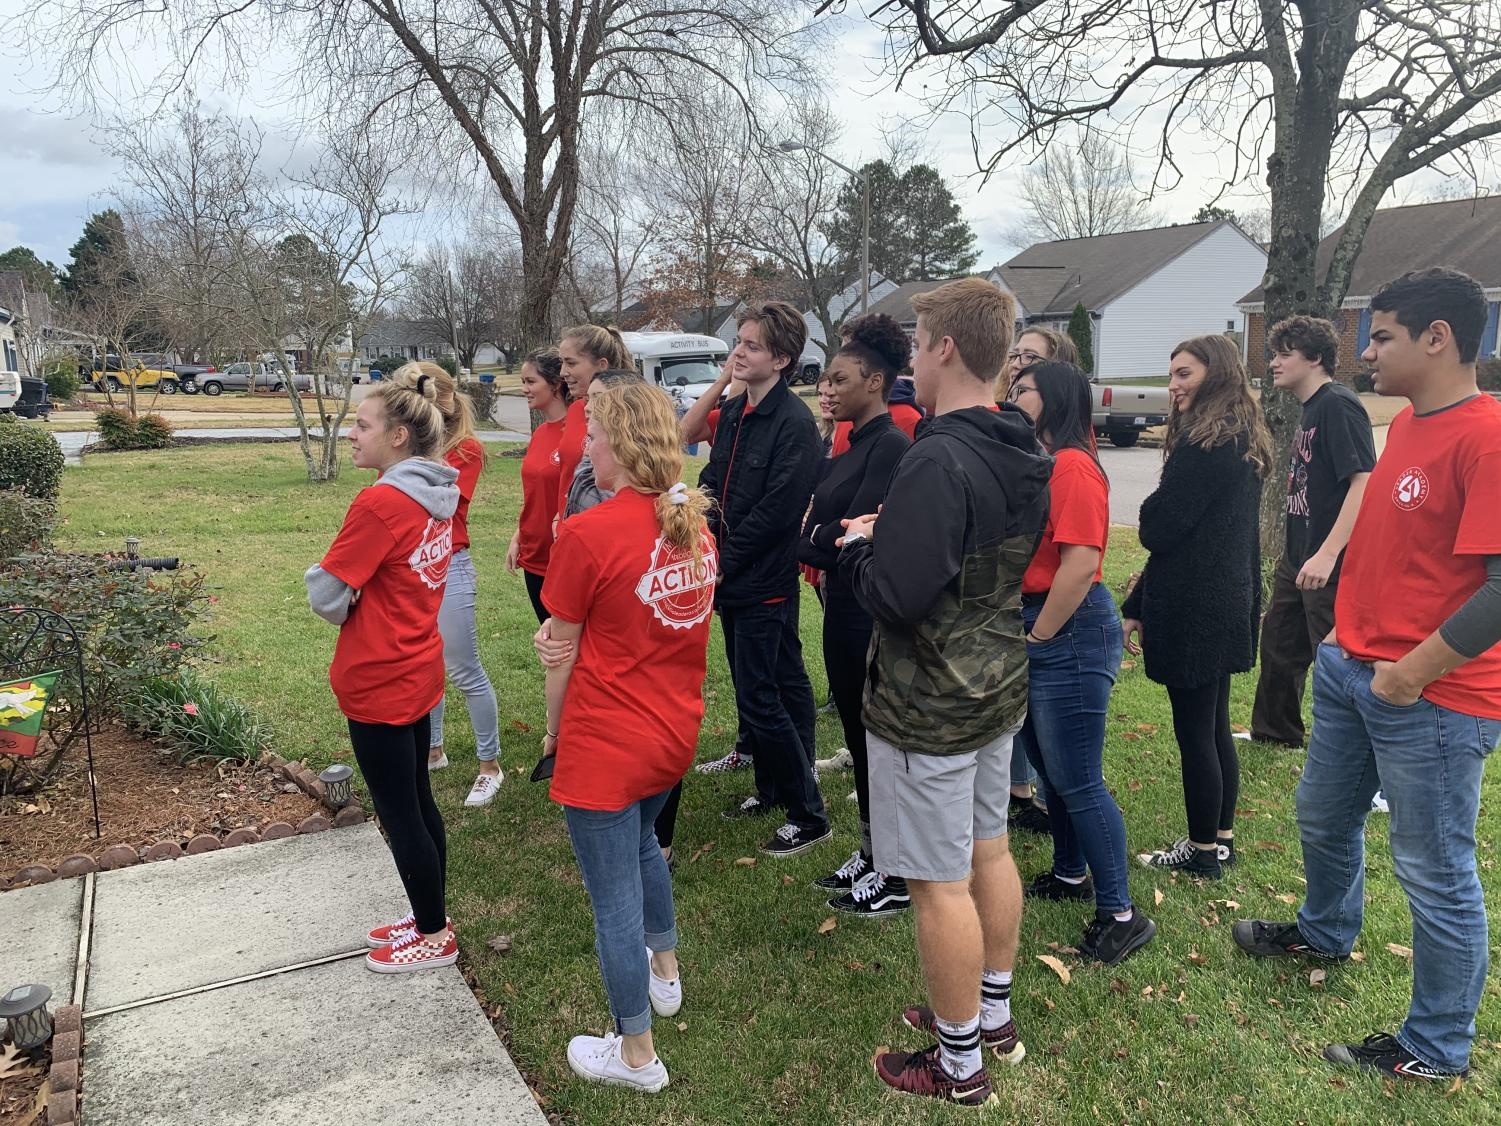 Michael Boomer's 1A leadership skills development class took a field trip to sing songs for the elderly.